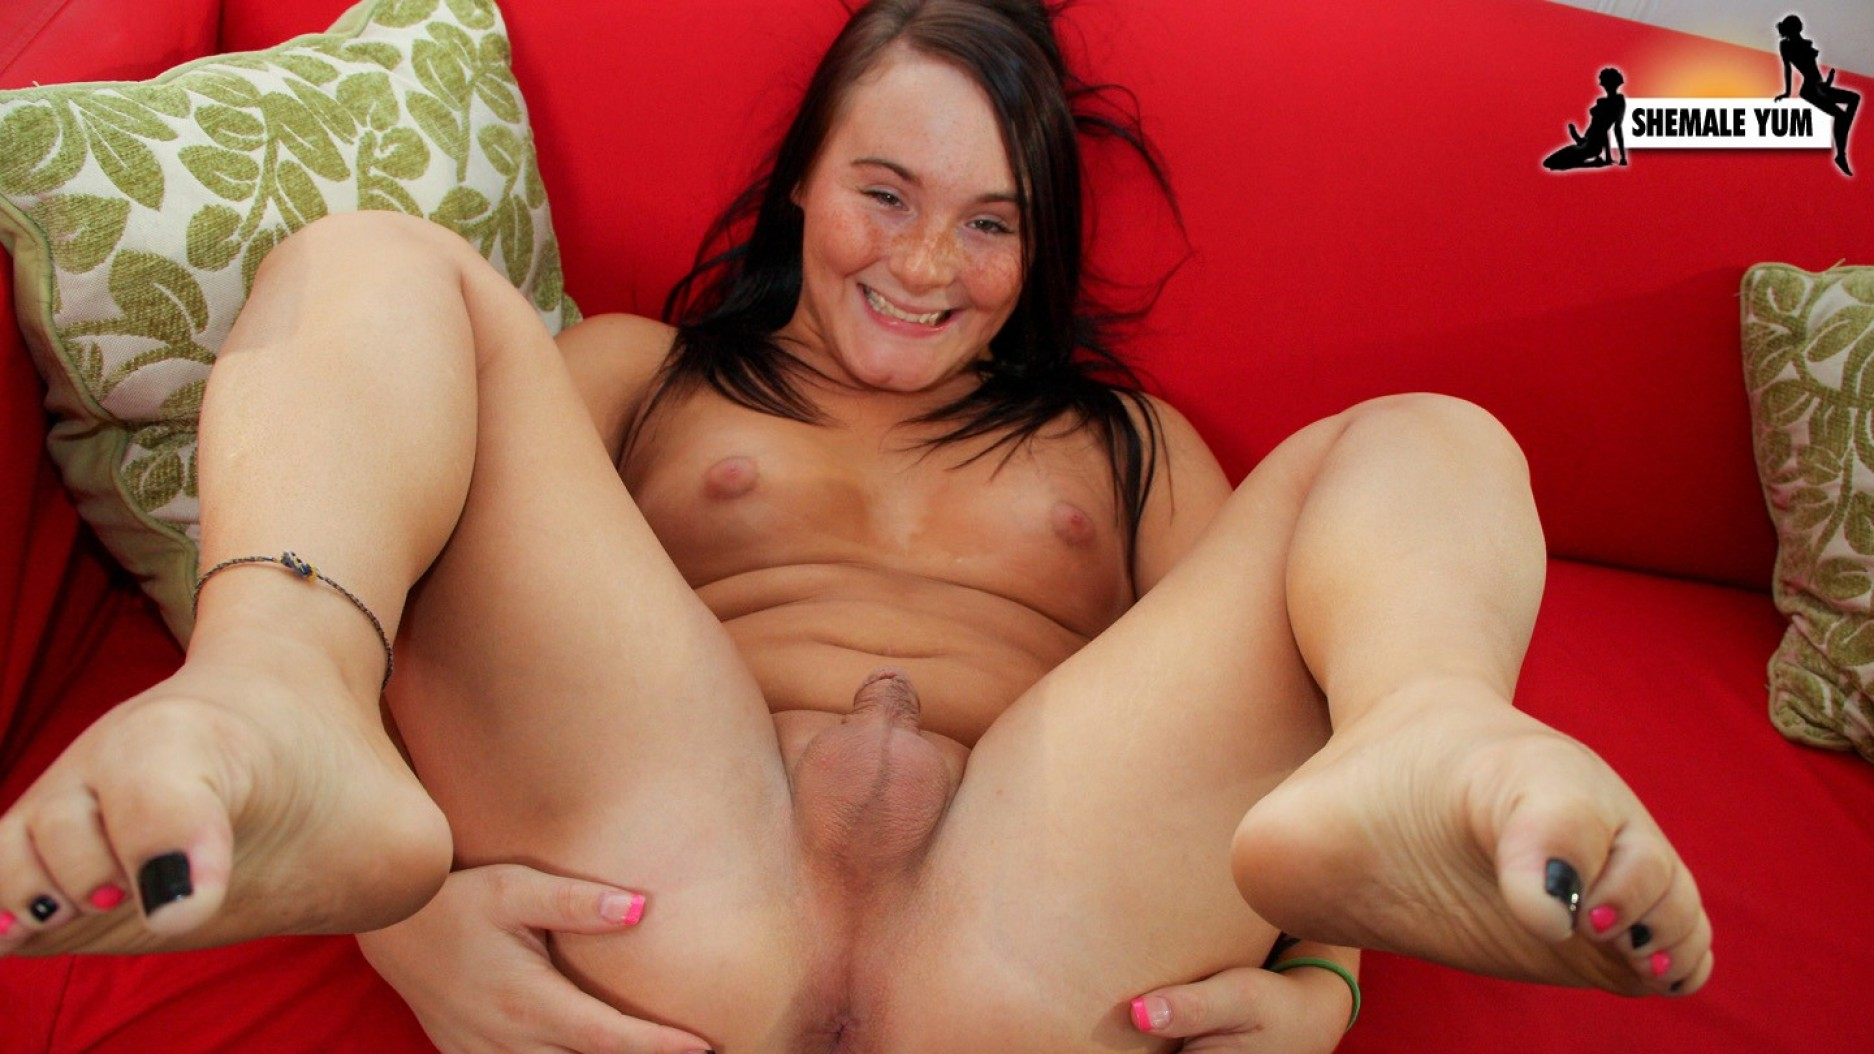 Horny shemales having fun